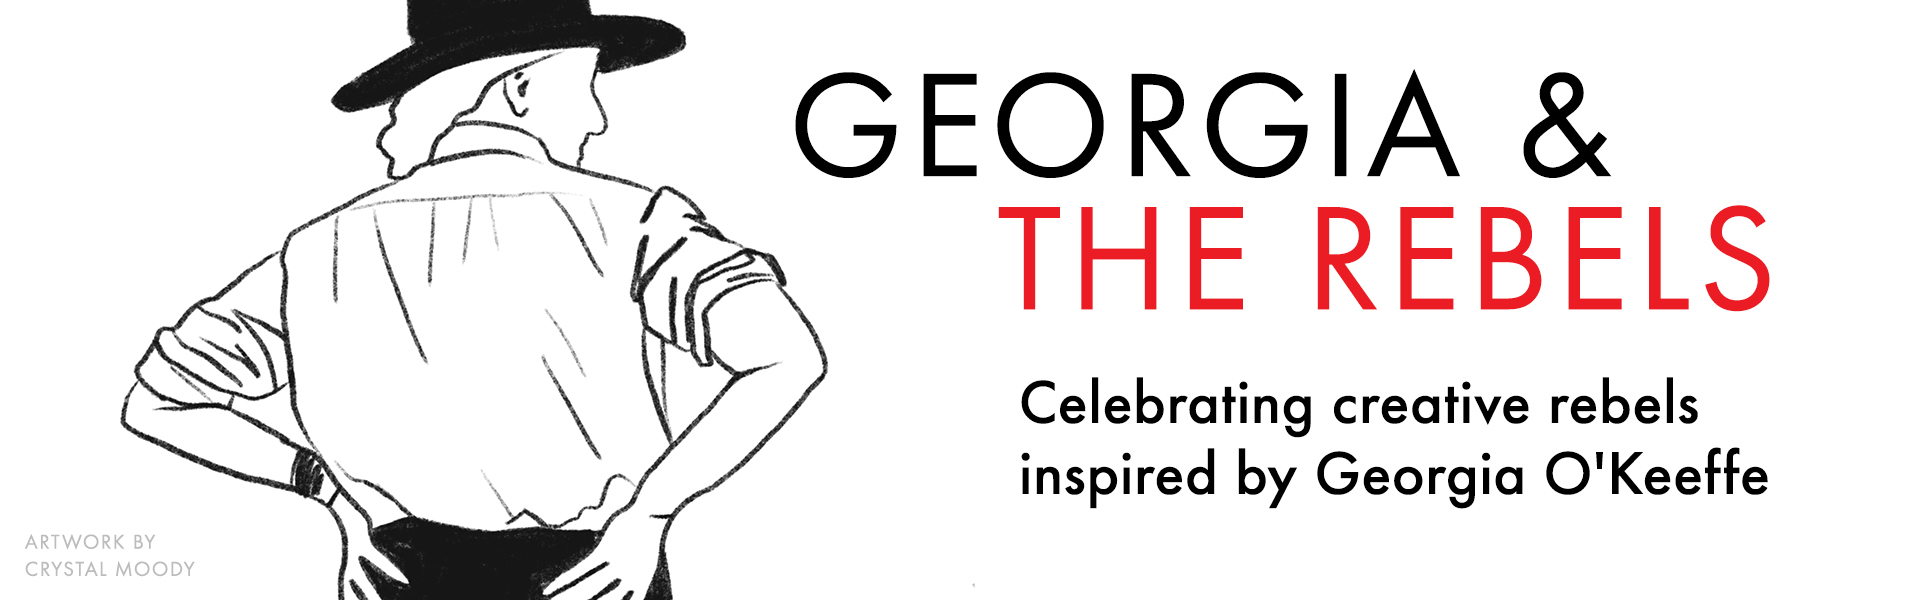 Georgia and the Rebels web banner